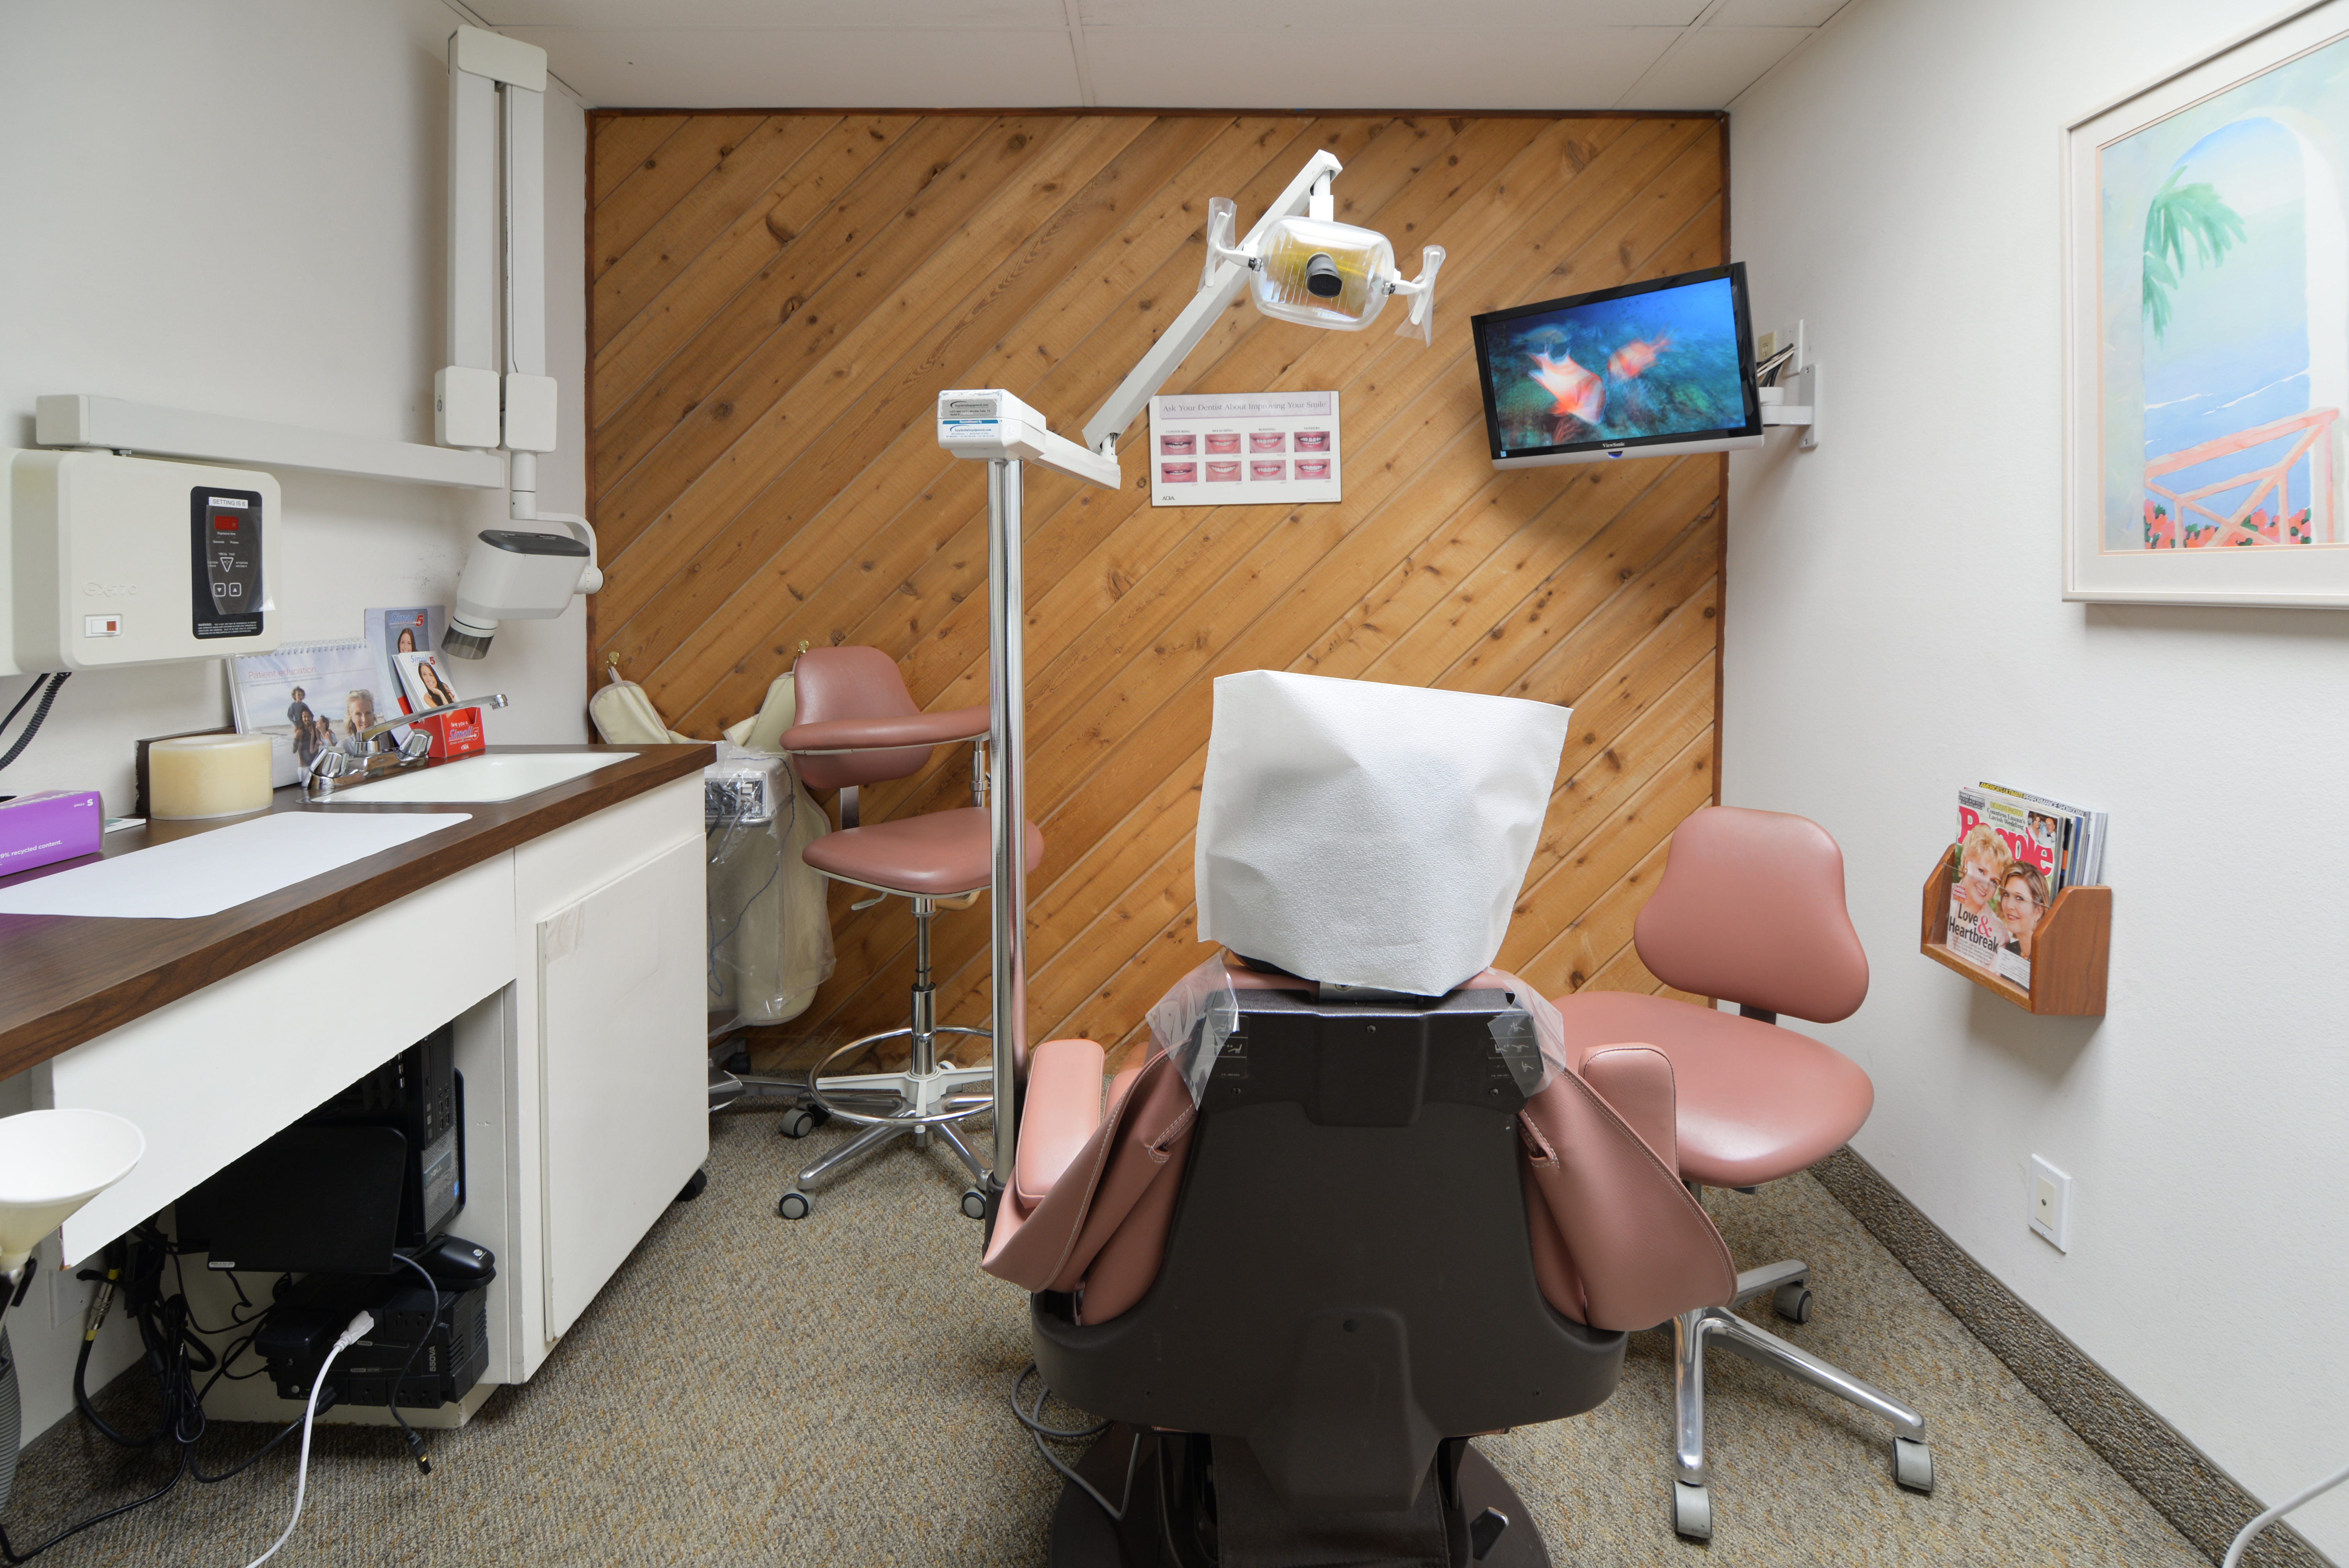 Patient in a dental chair at Bijan Family Dental Practice in Fountain Valley, CA